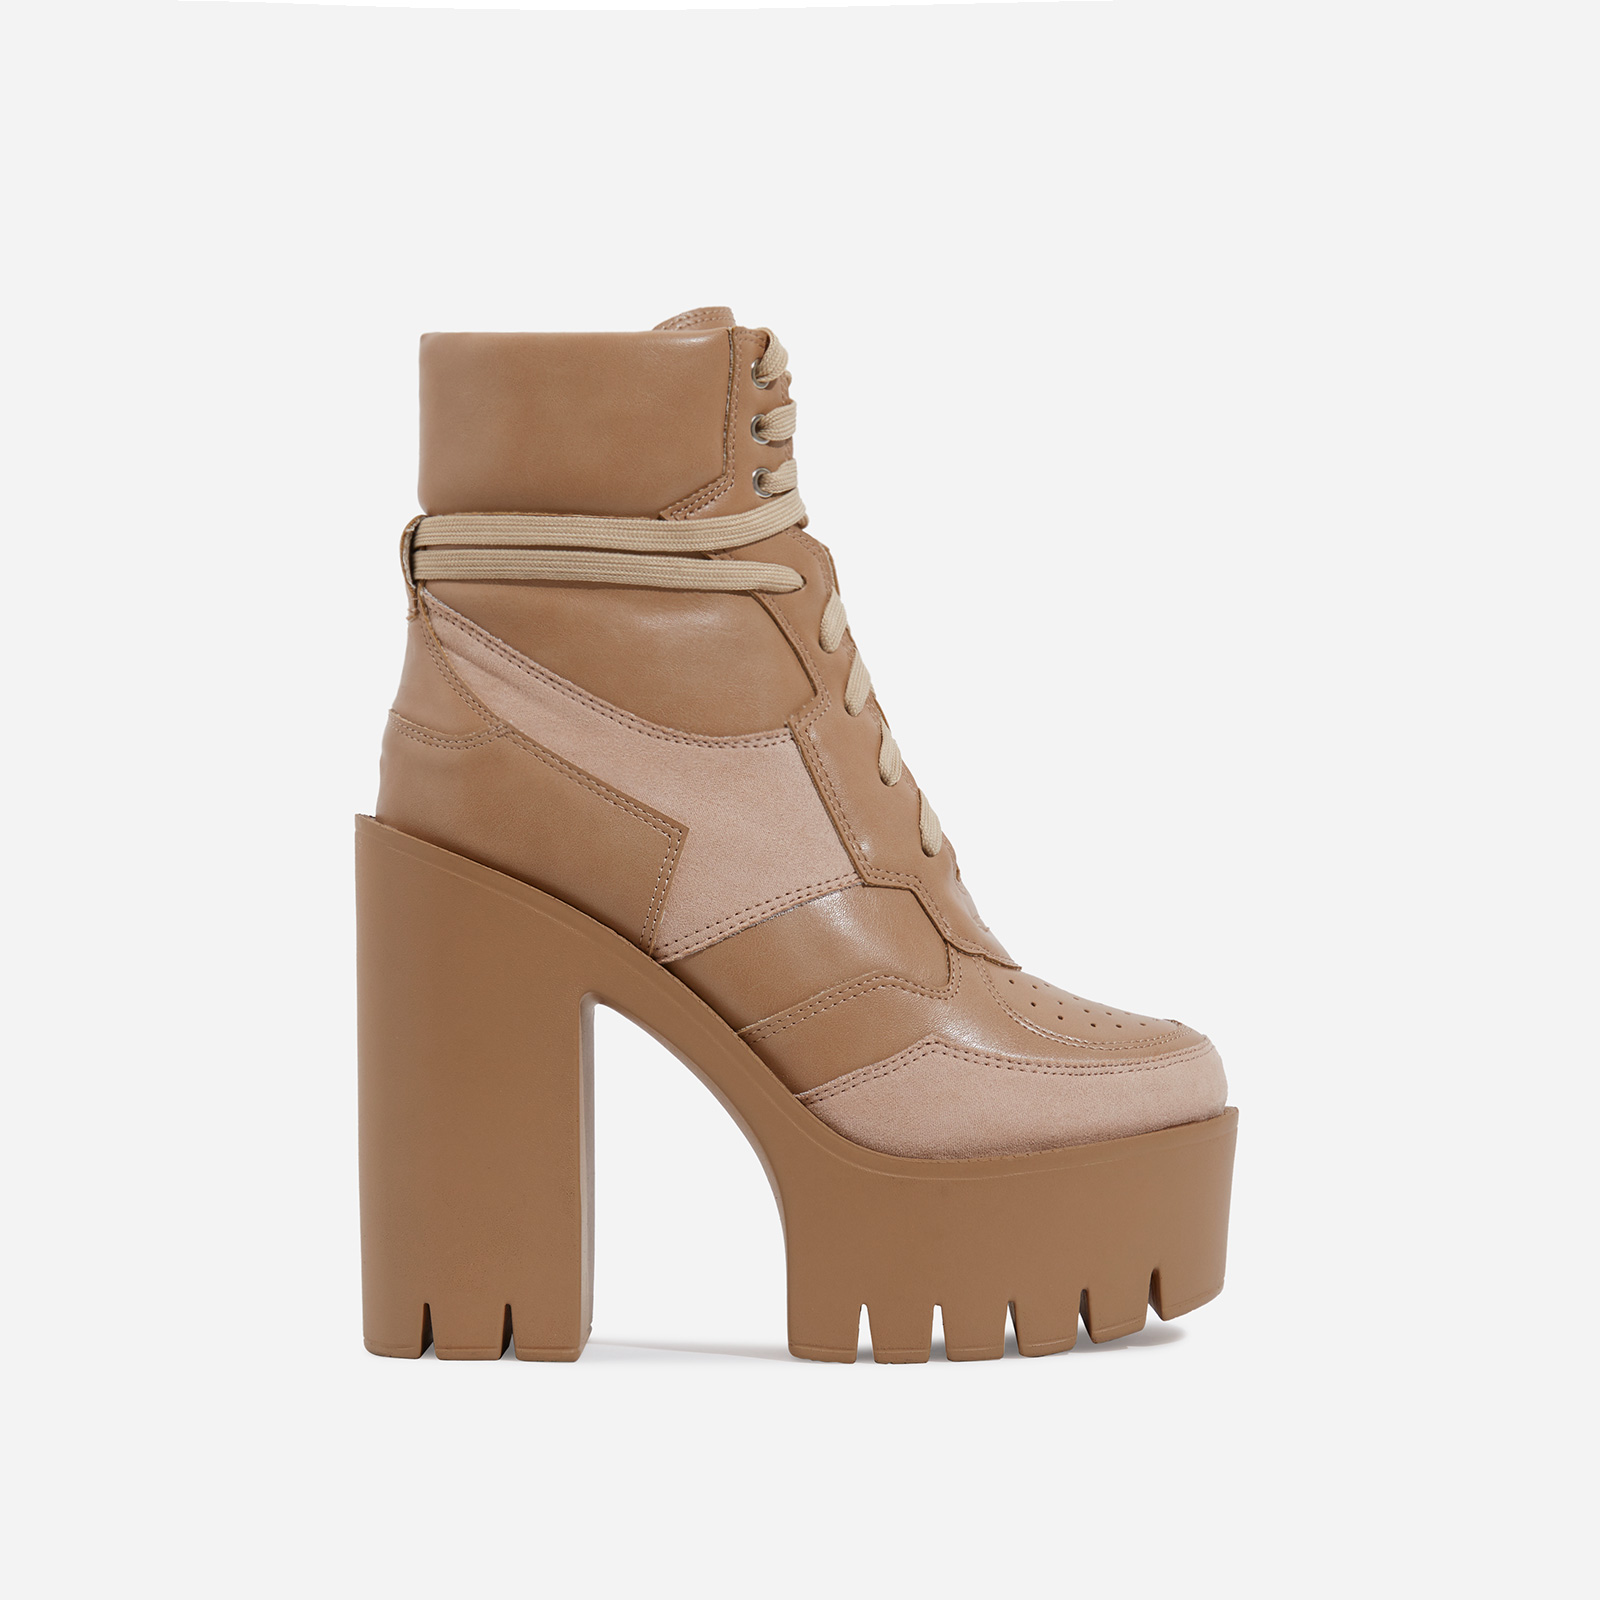 Penni Platform Lace Up Cleated Sole Ankle Bike Boot In Nude Faux Leather